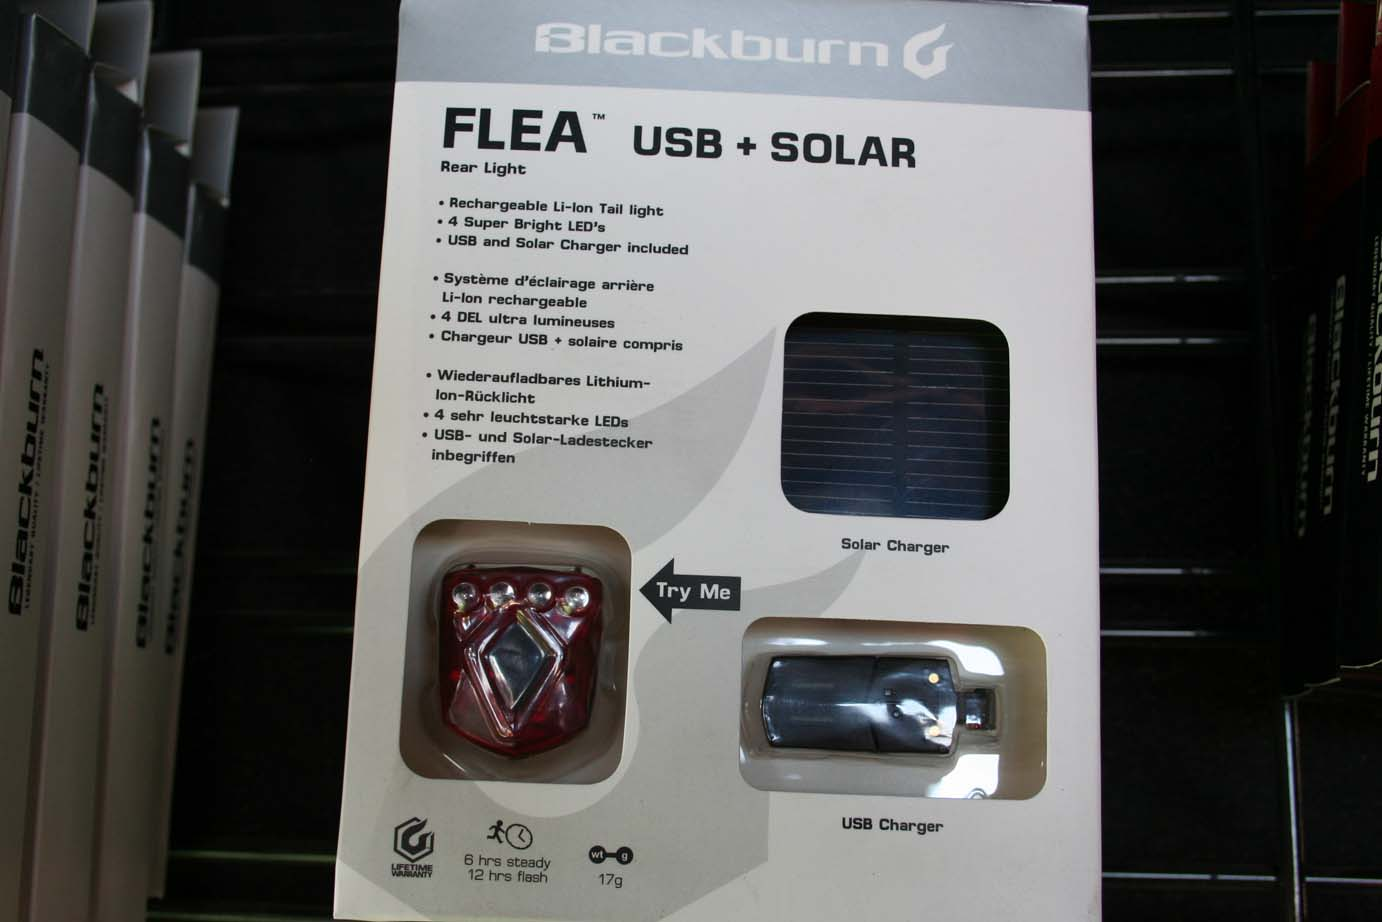 Blackburn offers a new USB and Solar-charged LED light, in front or rear formats.